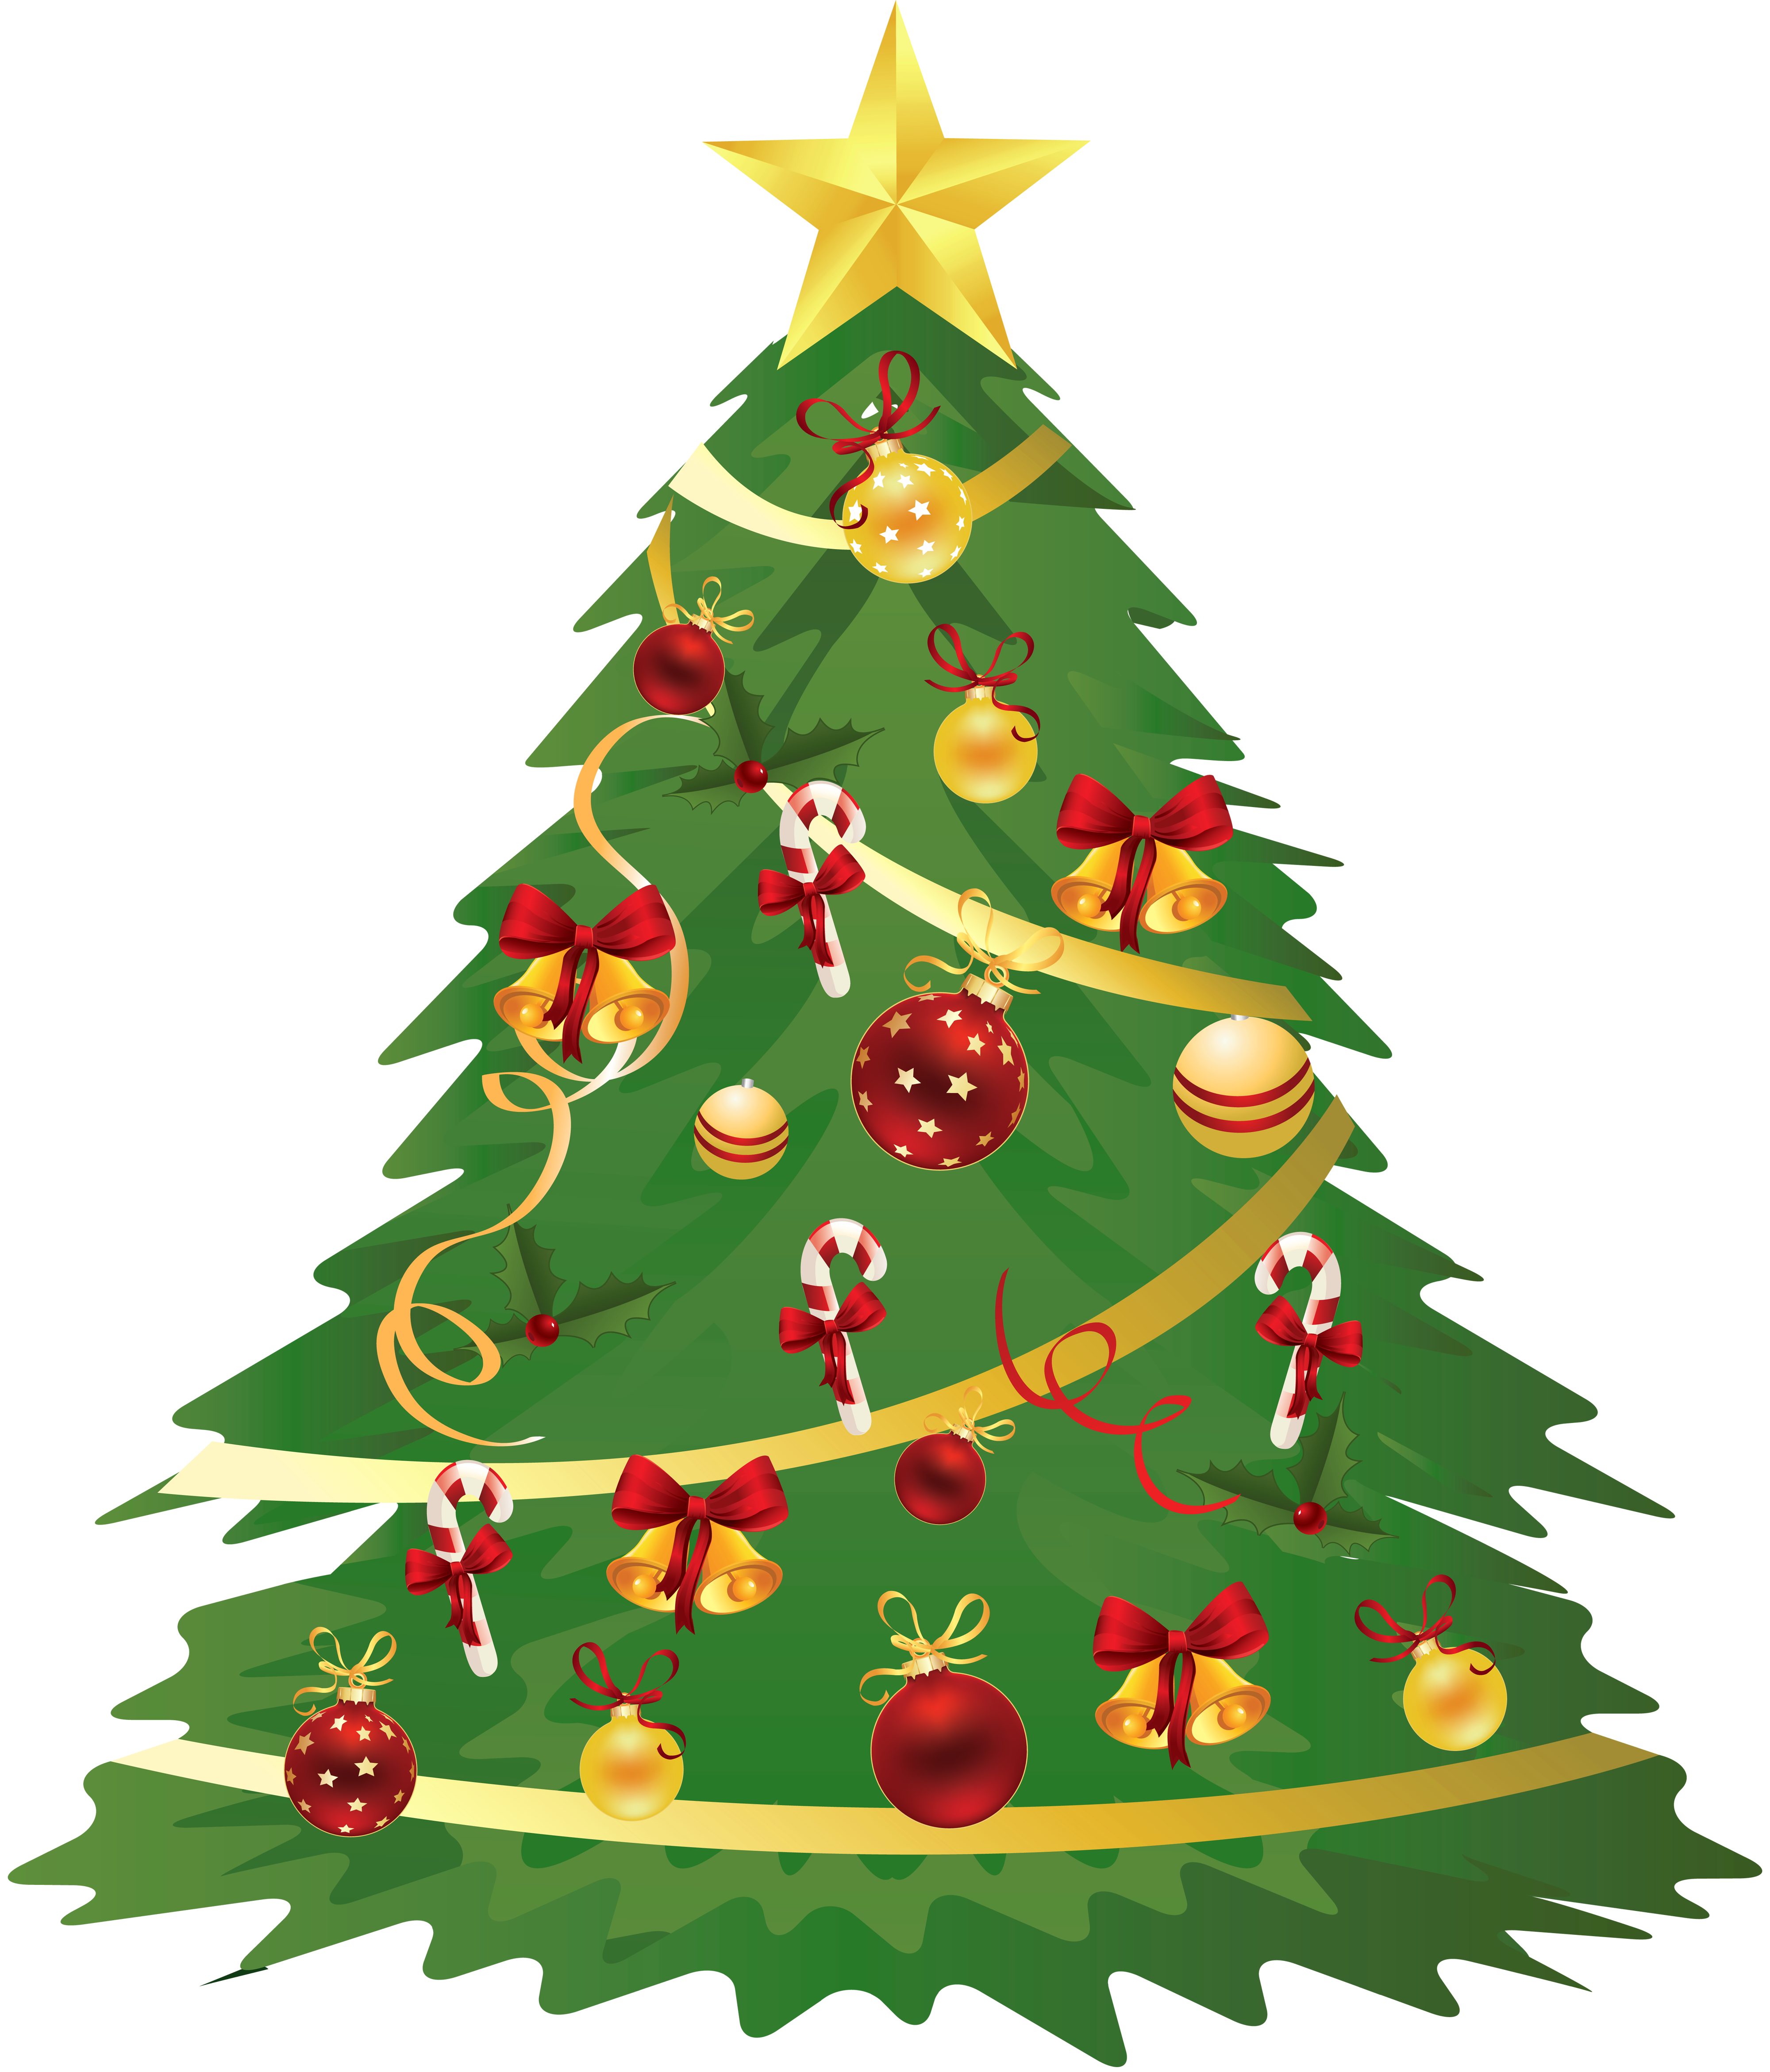 Christmas Tree Clipart Transparent Background.